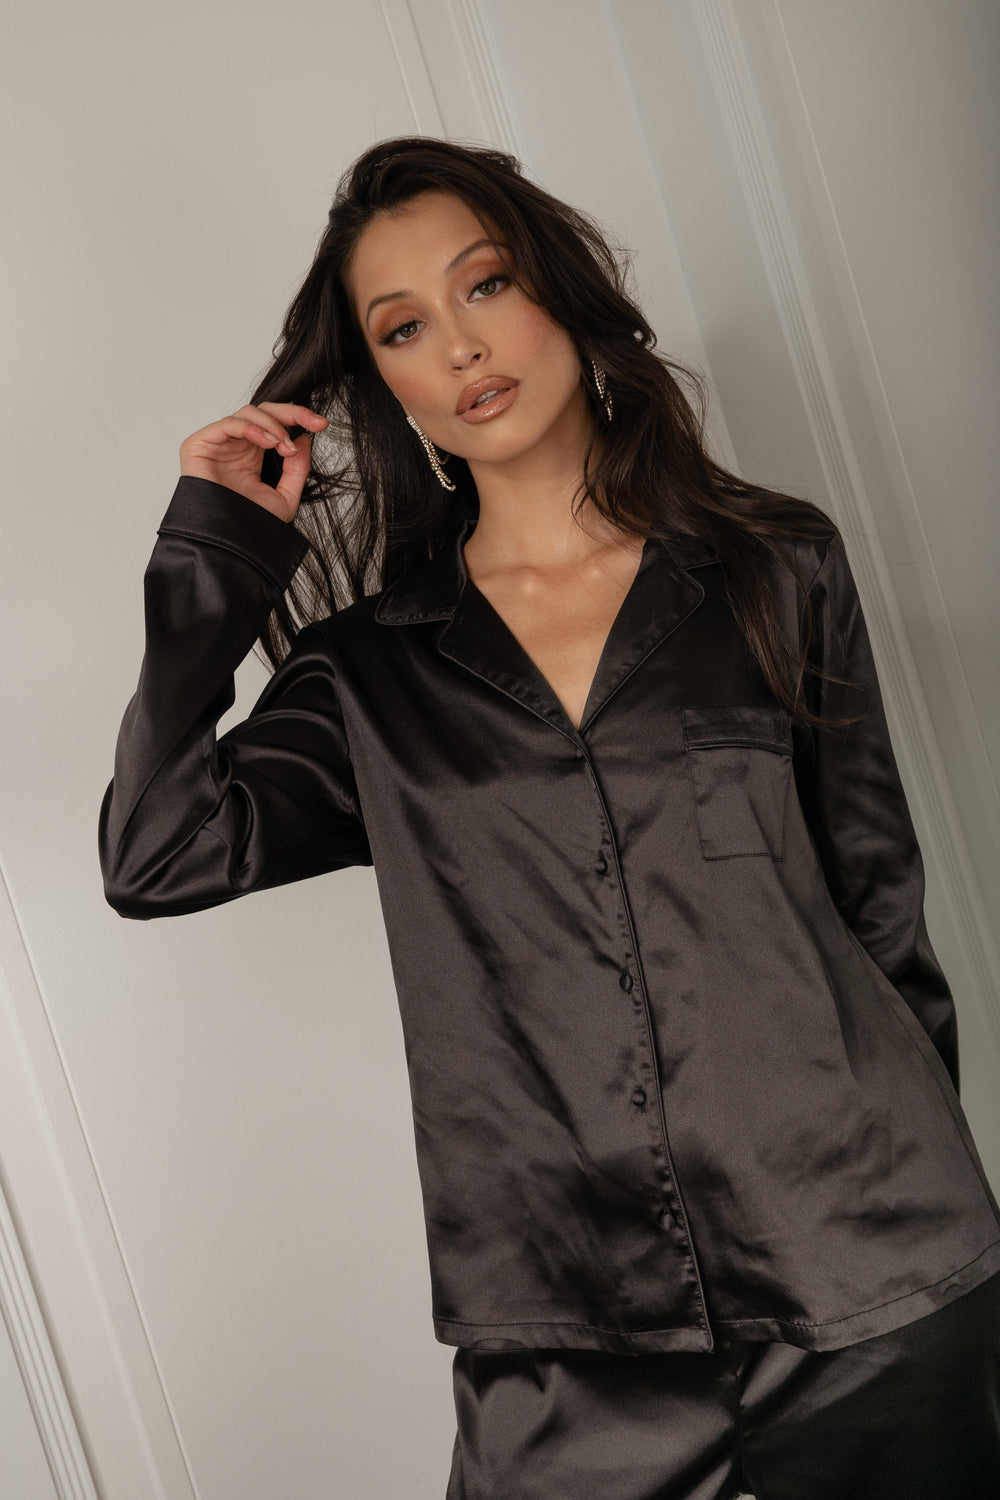 Abigail Satin Long Sleeve Pyjama Top - Black - MESHKI ?id=16060473638987